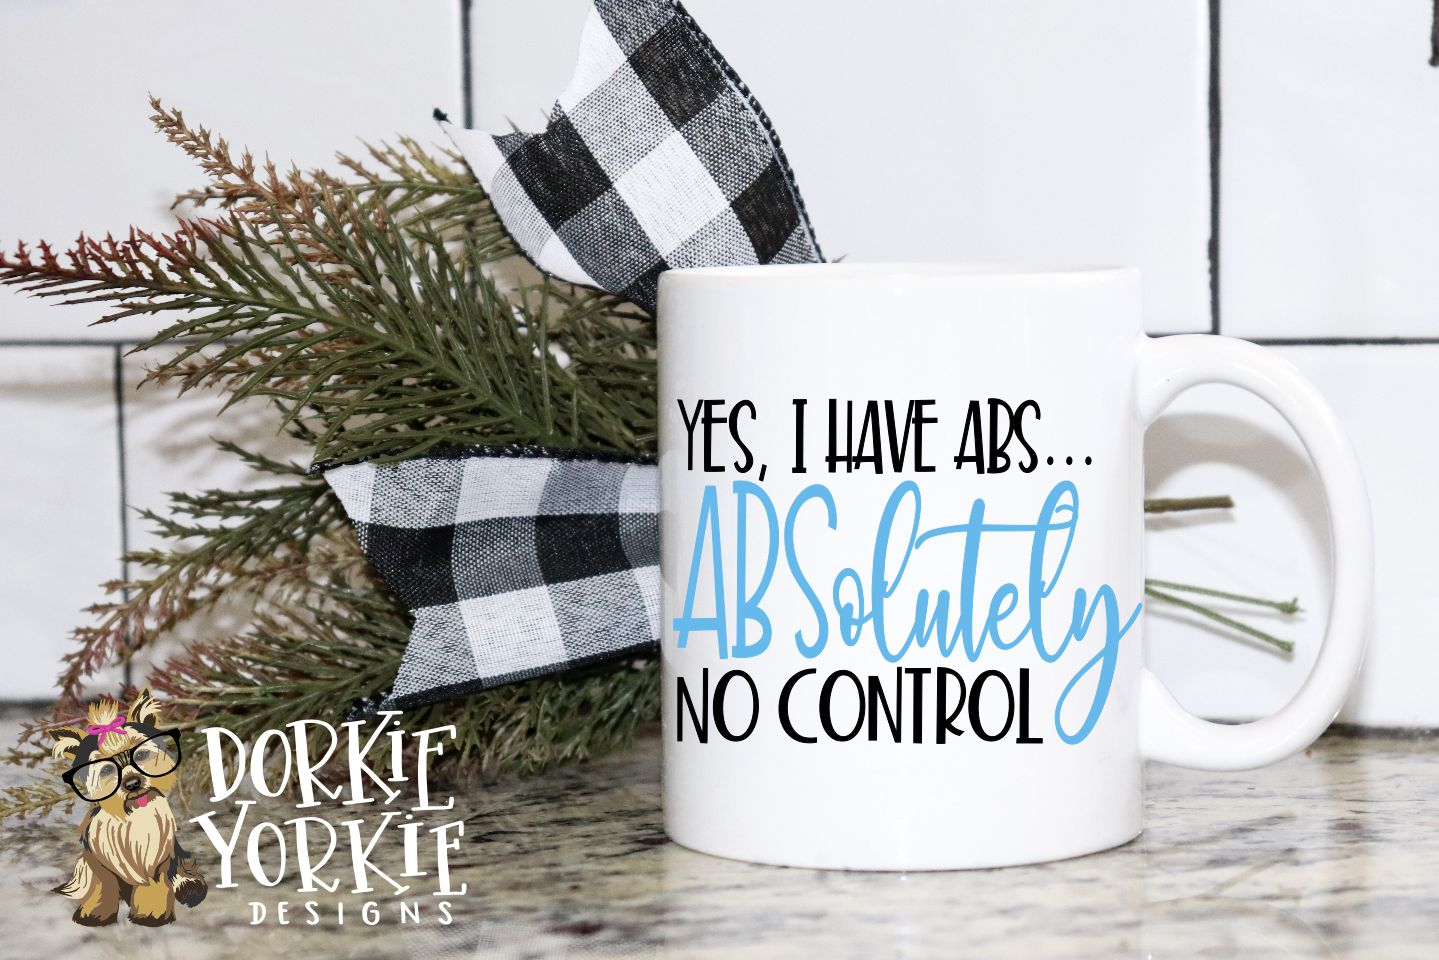 I have ABS - ABSolutely no control - funny - SVG cut file example image 2